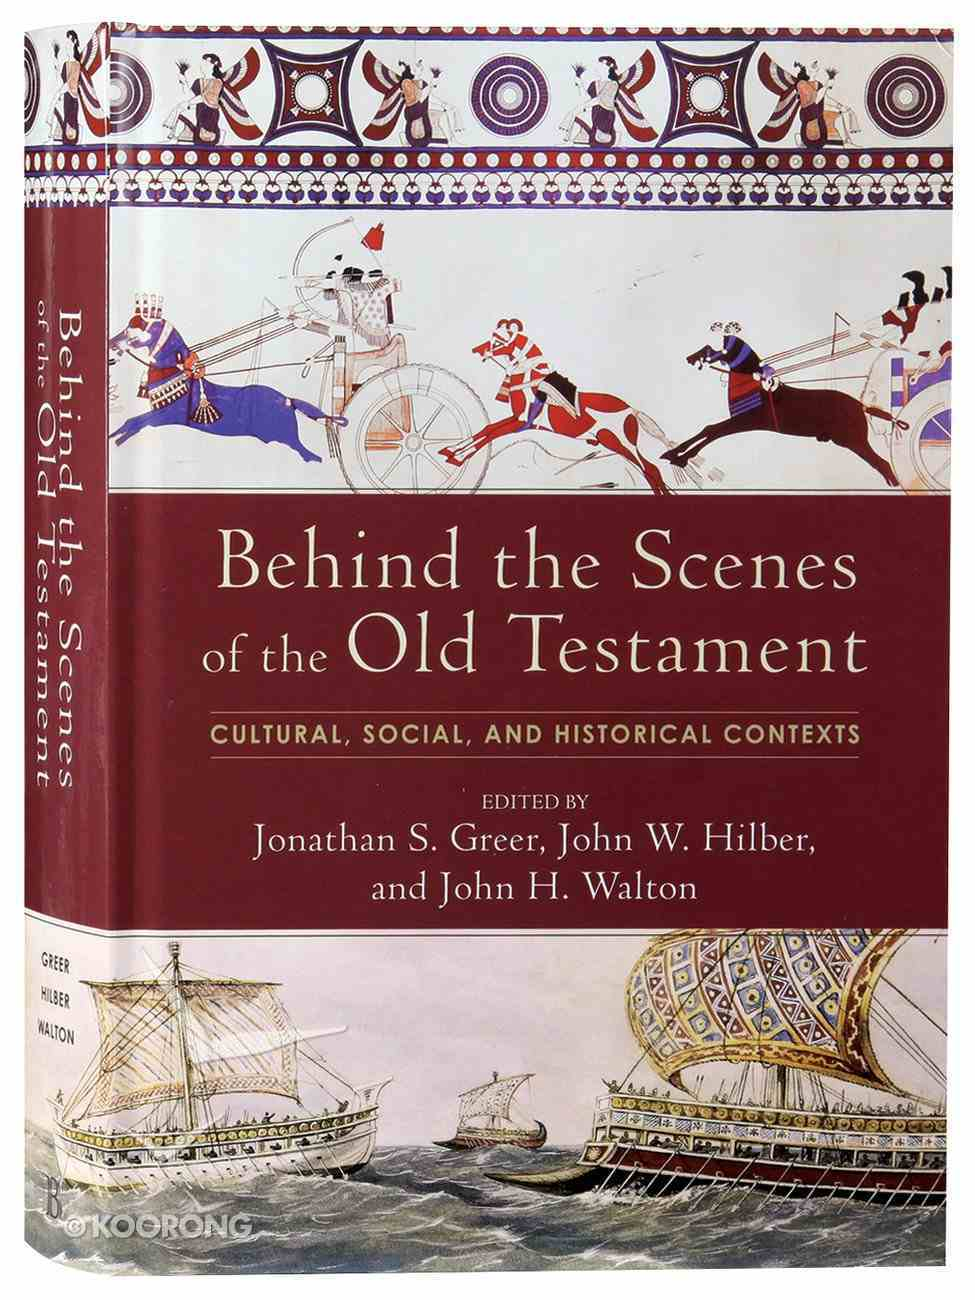 Behind the Scenes of the Old Testament: Cultural, Social, and Historical Contexts Hardback